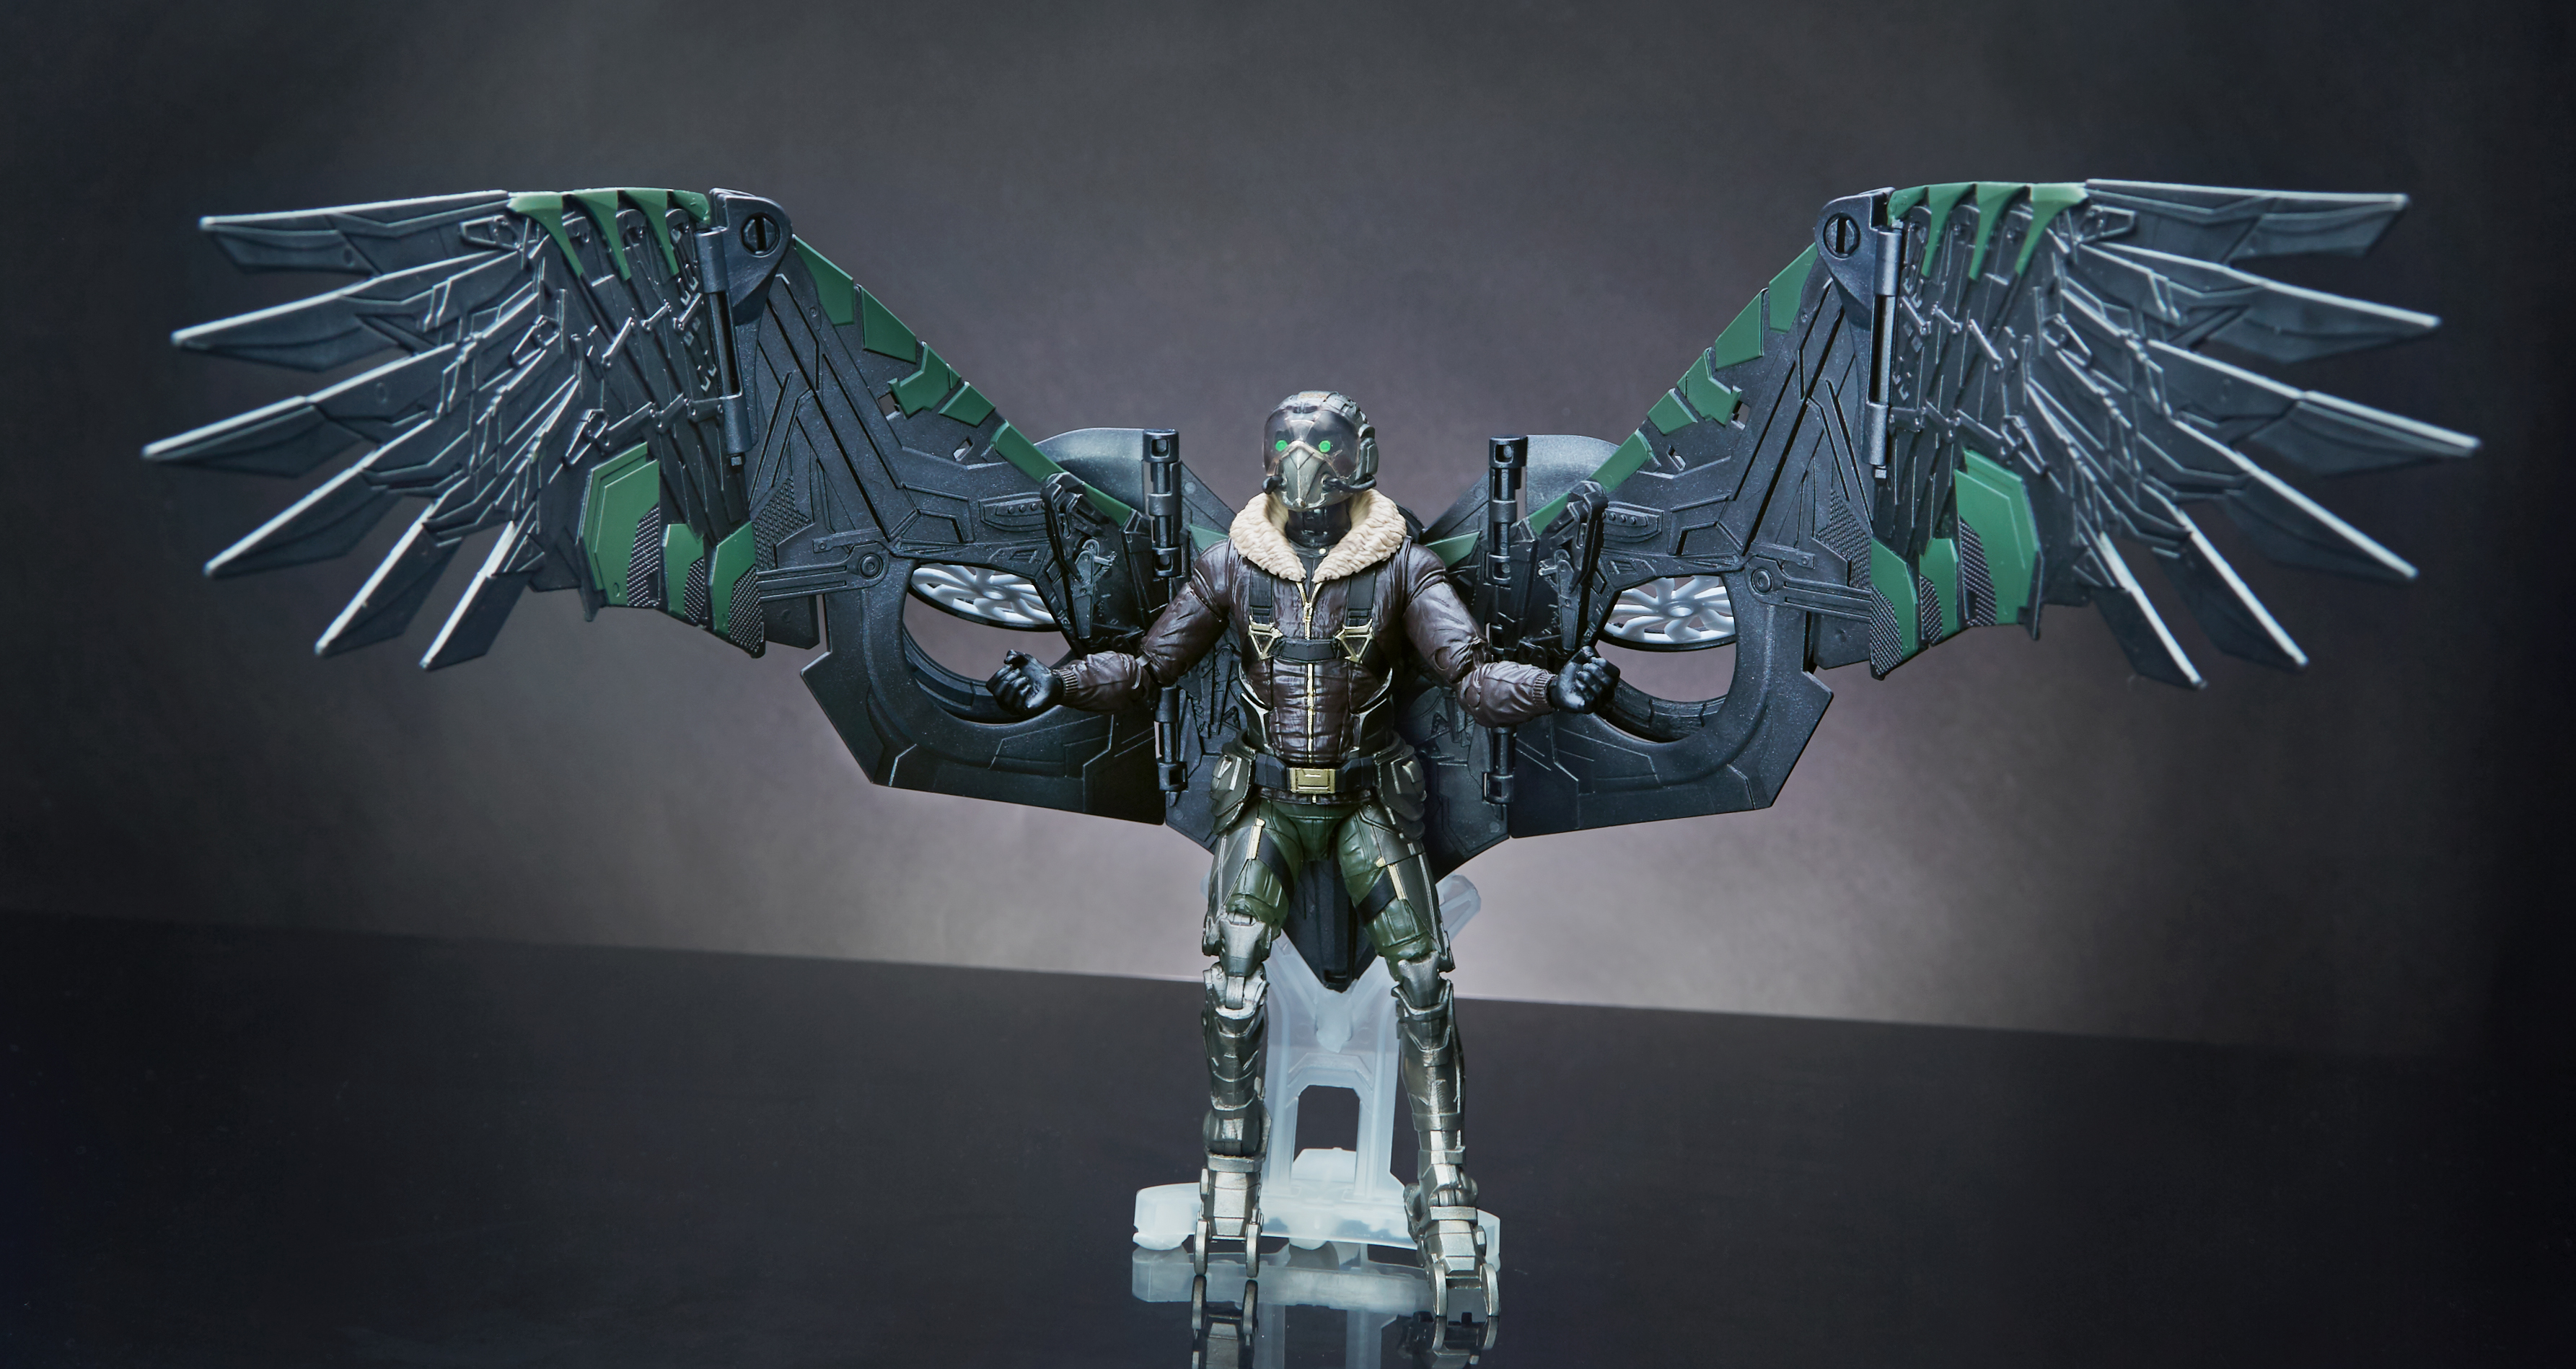 Vulture marvel clip art Homecoming' Trailer and Marvel Toys Hone in on Vulture's Tech ... clip art